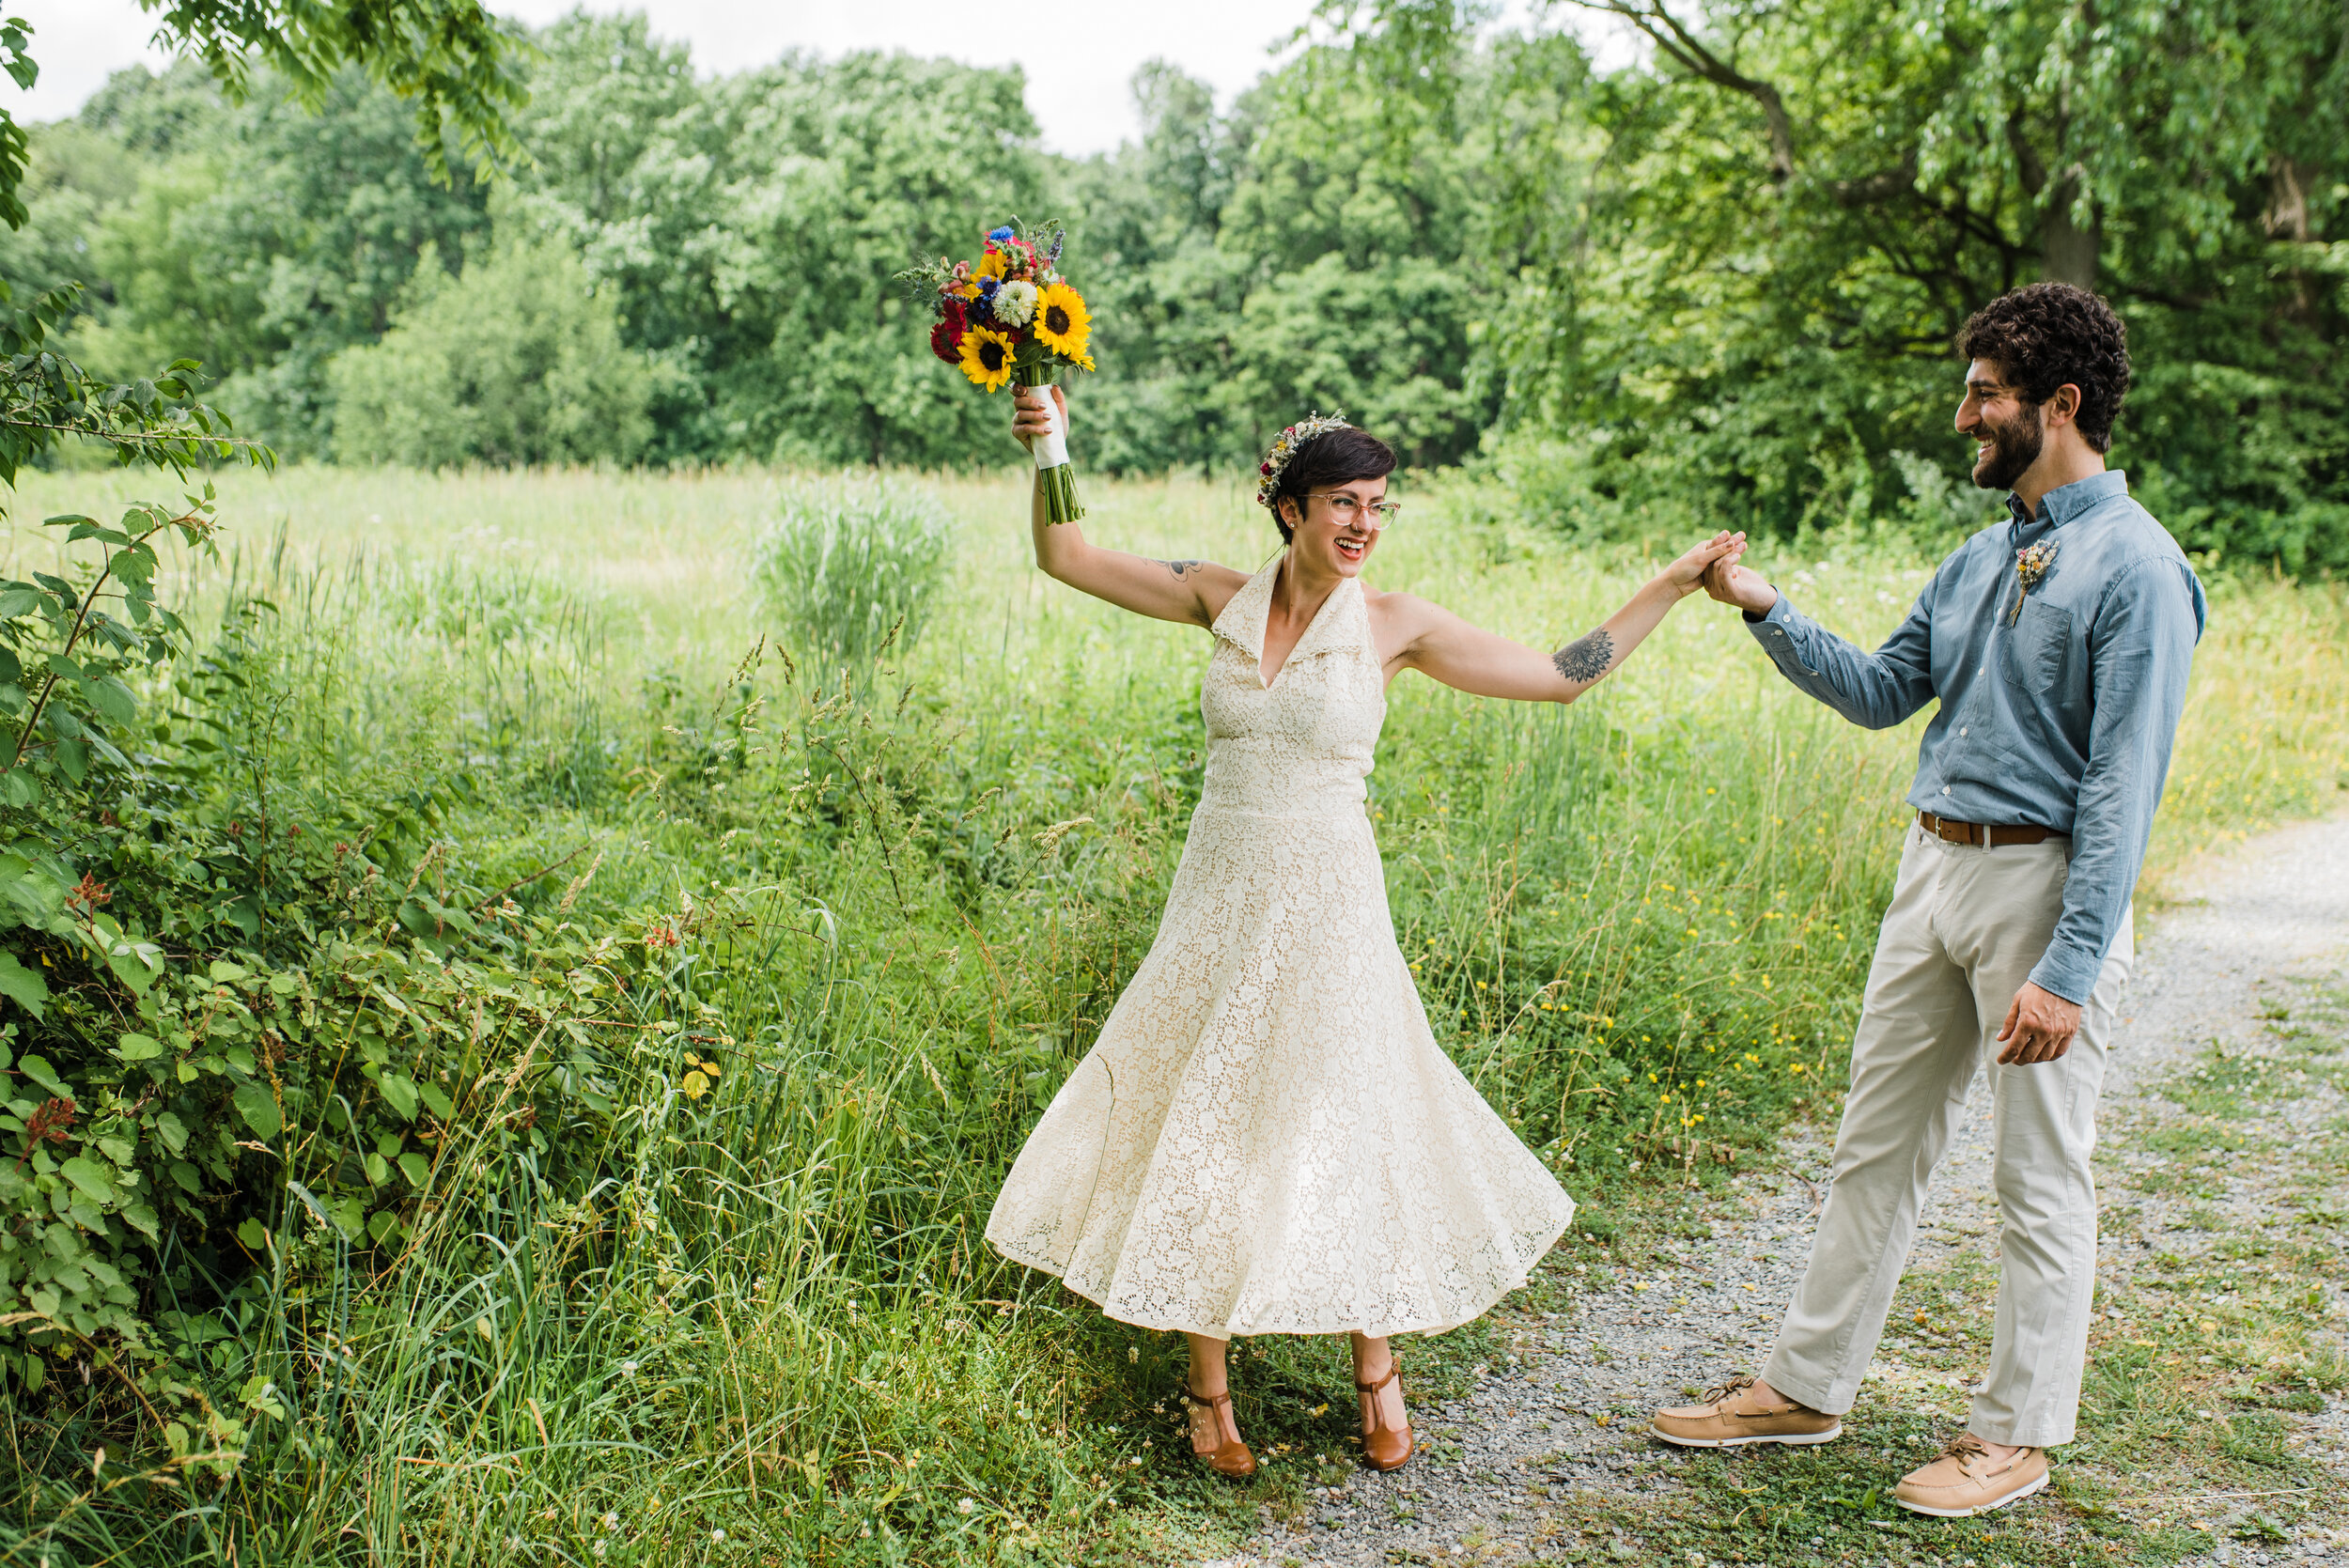 Vintage inspired wedding couple dancing in an open field